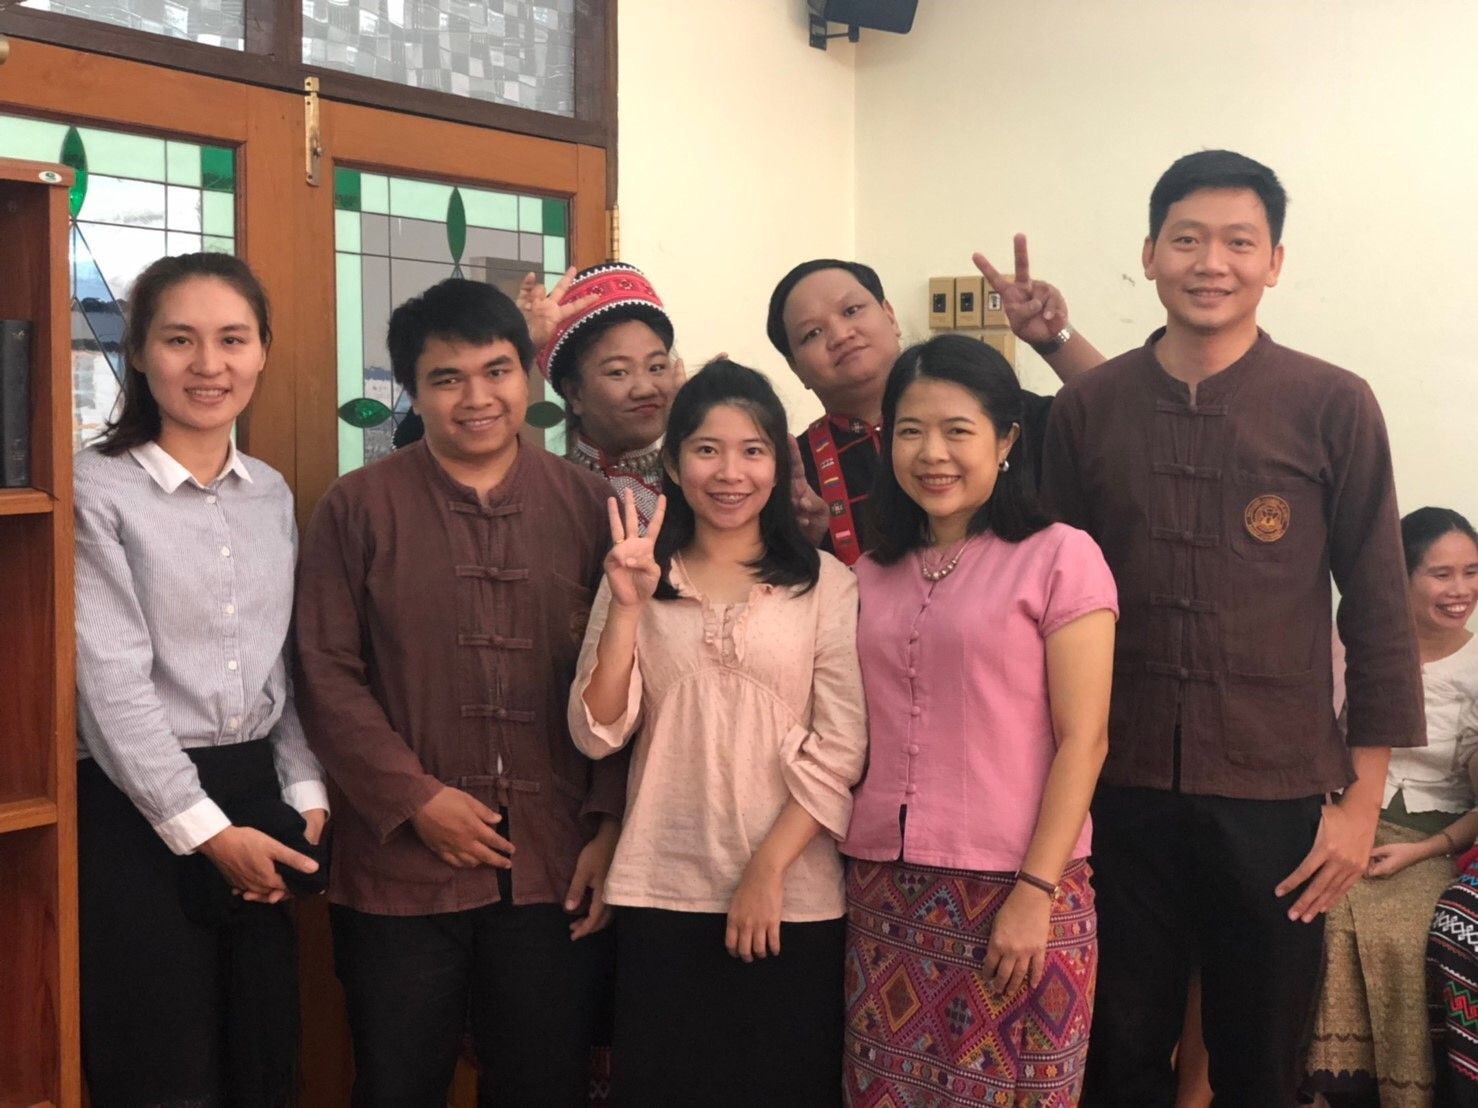 Seven wonderful MDiv students eagerly joining with Jesus in his mission in the world. In the last photo, they are making little hearts with their fingers and thumbs!